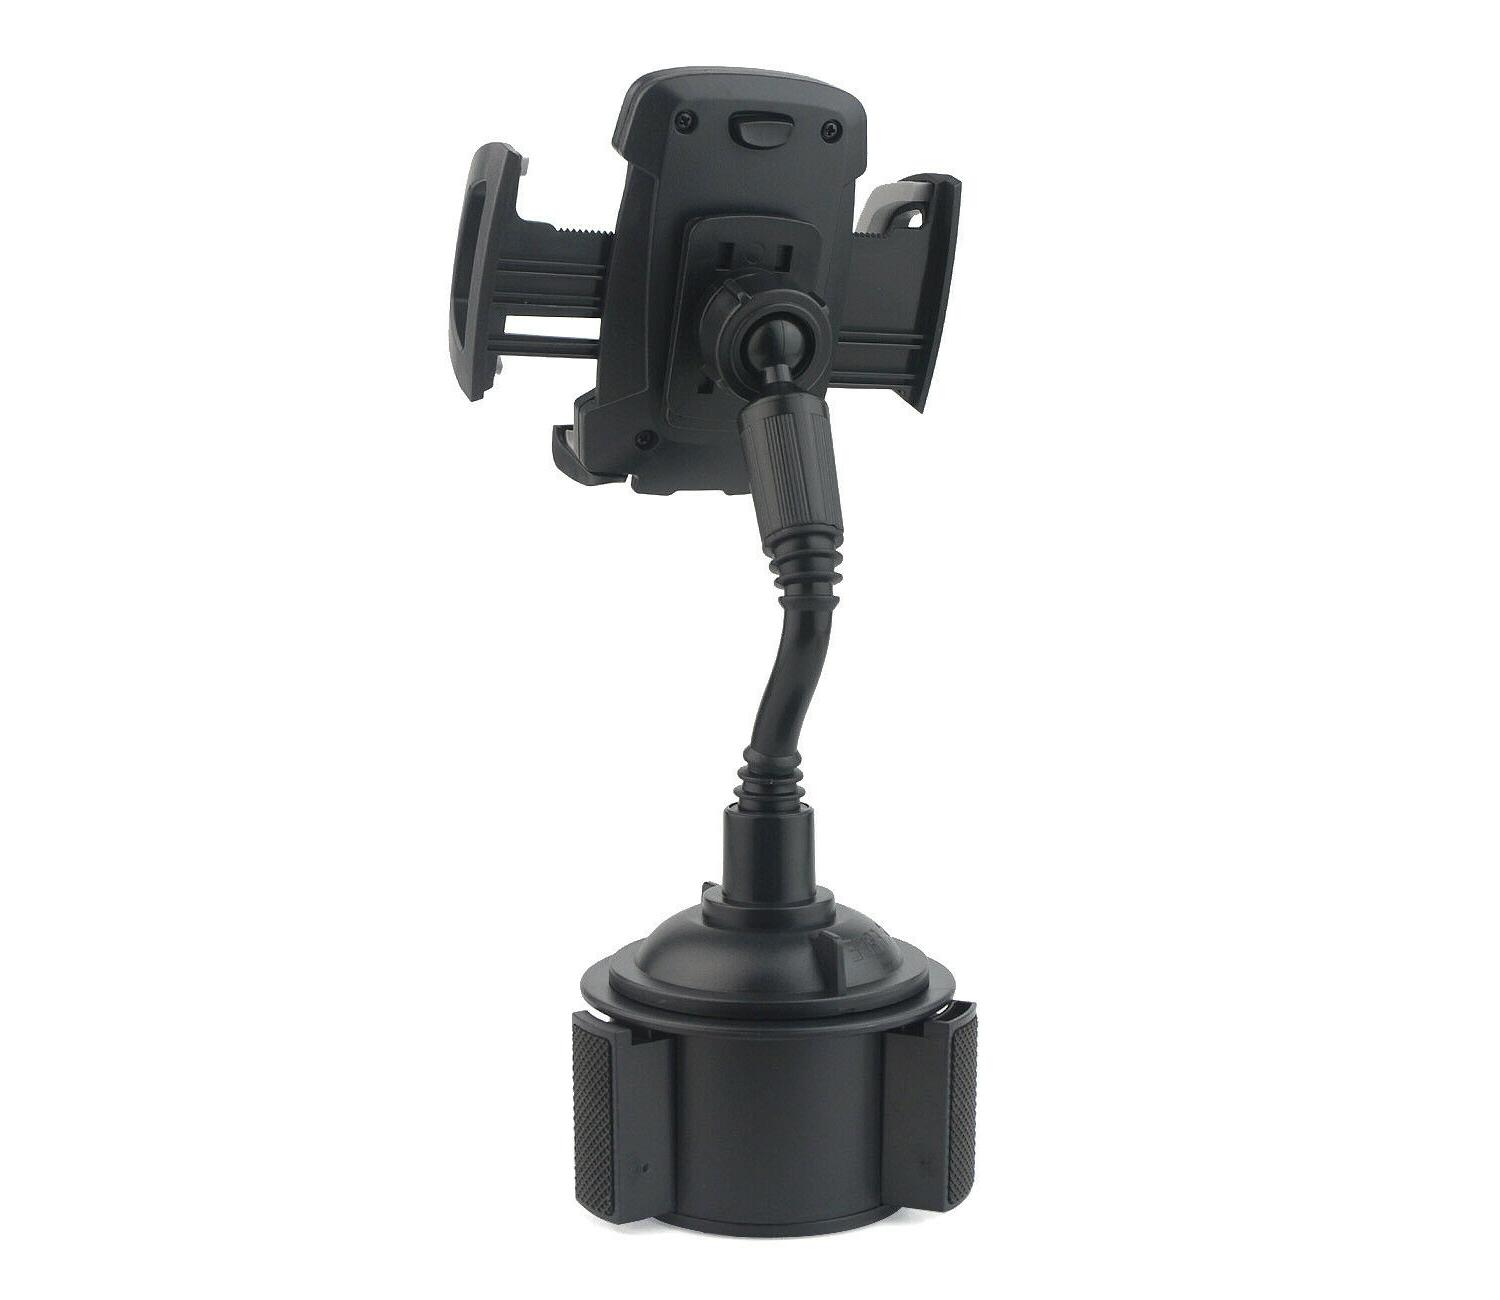 New Mount Cradle for Cell Phone #1